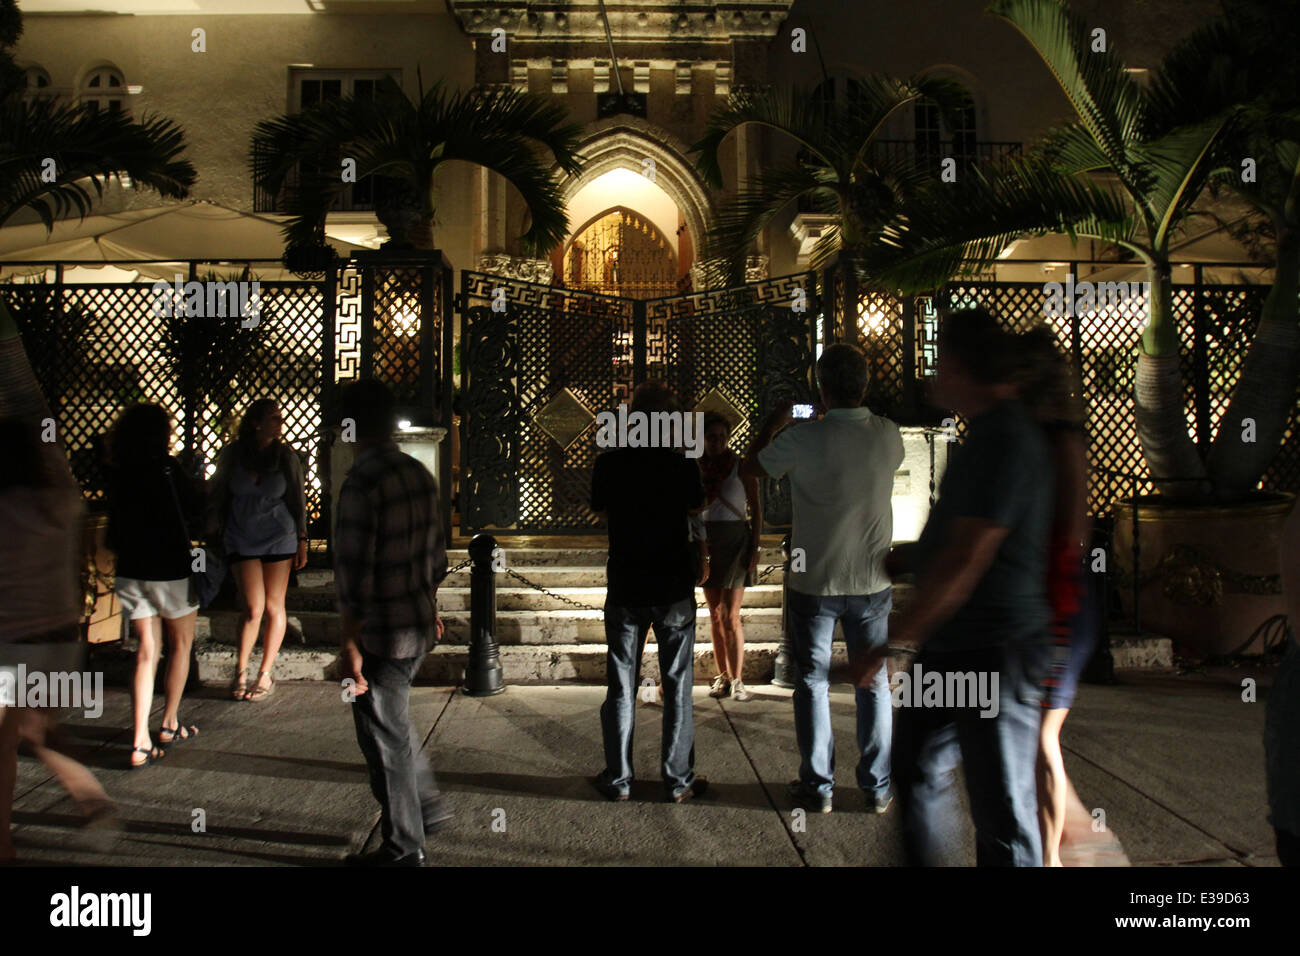 People gather outside the former residence of designer Gianni Versace on South Beach. Stock Photo